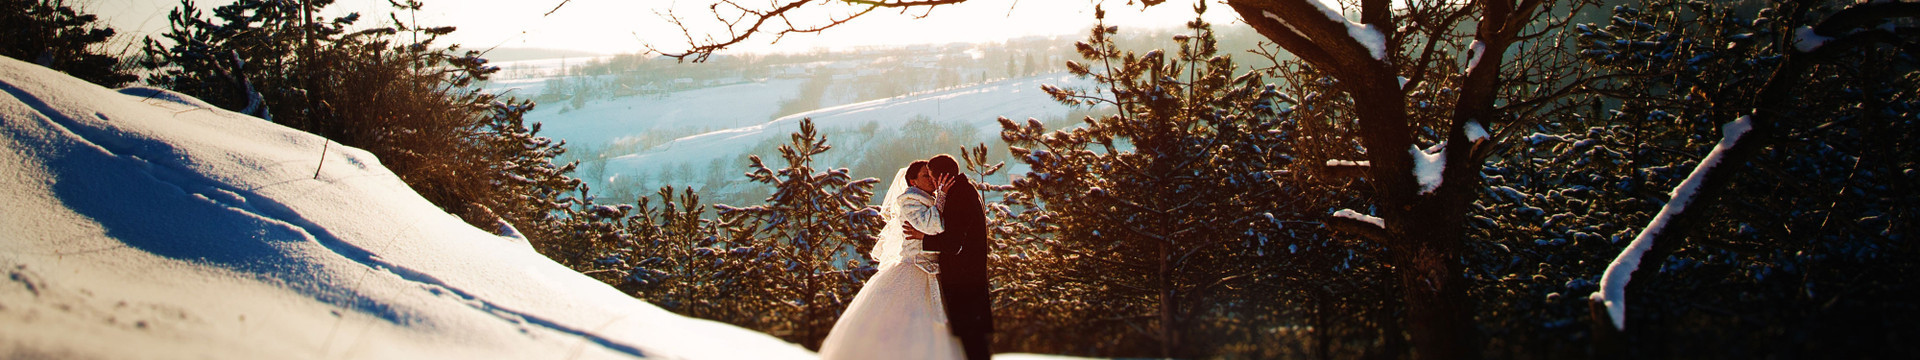 Adult Only Weddings In Park City - Park City Mountains in Winter